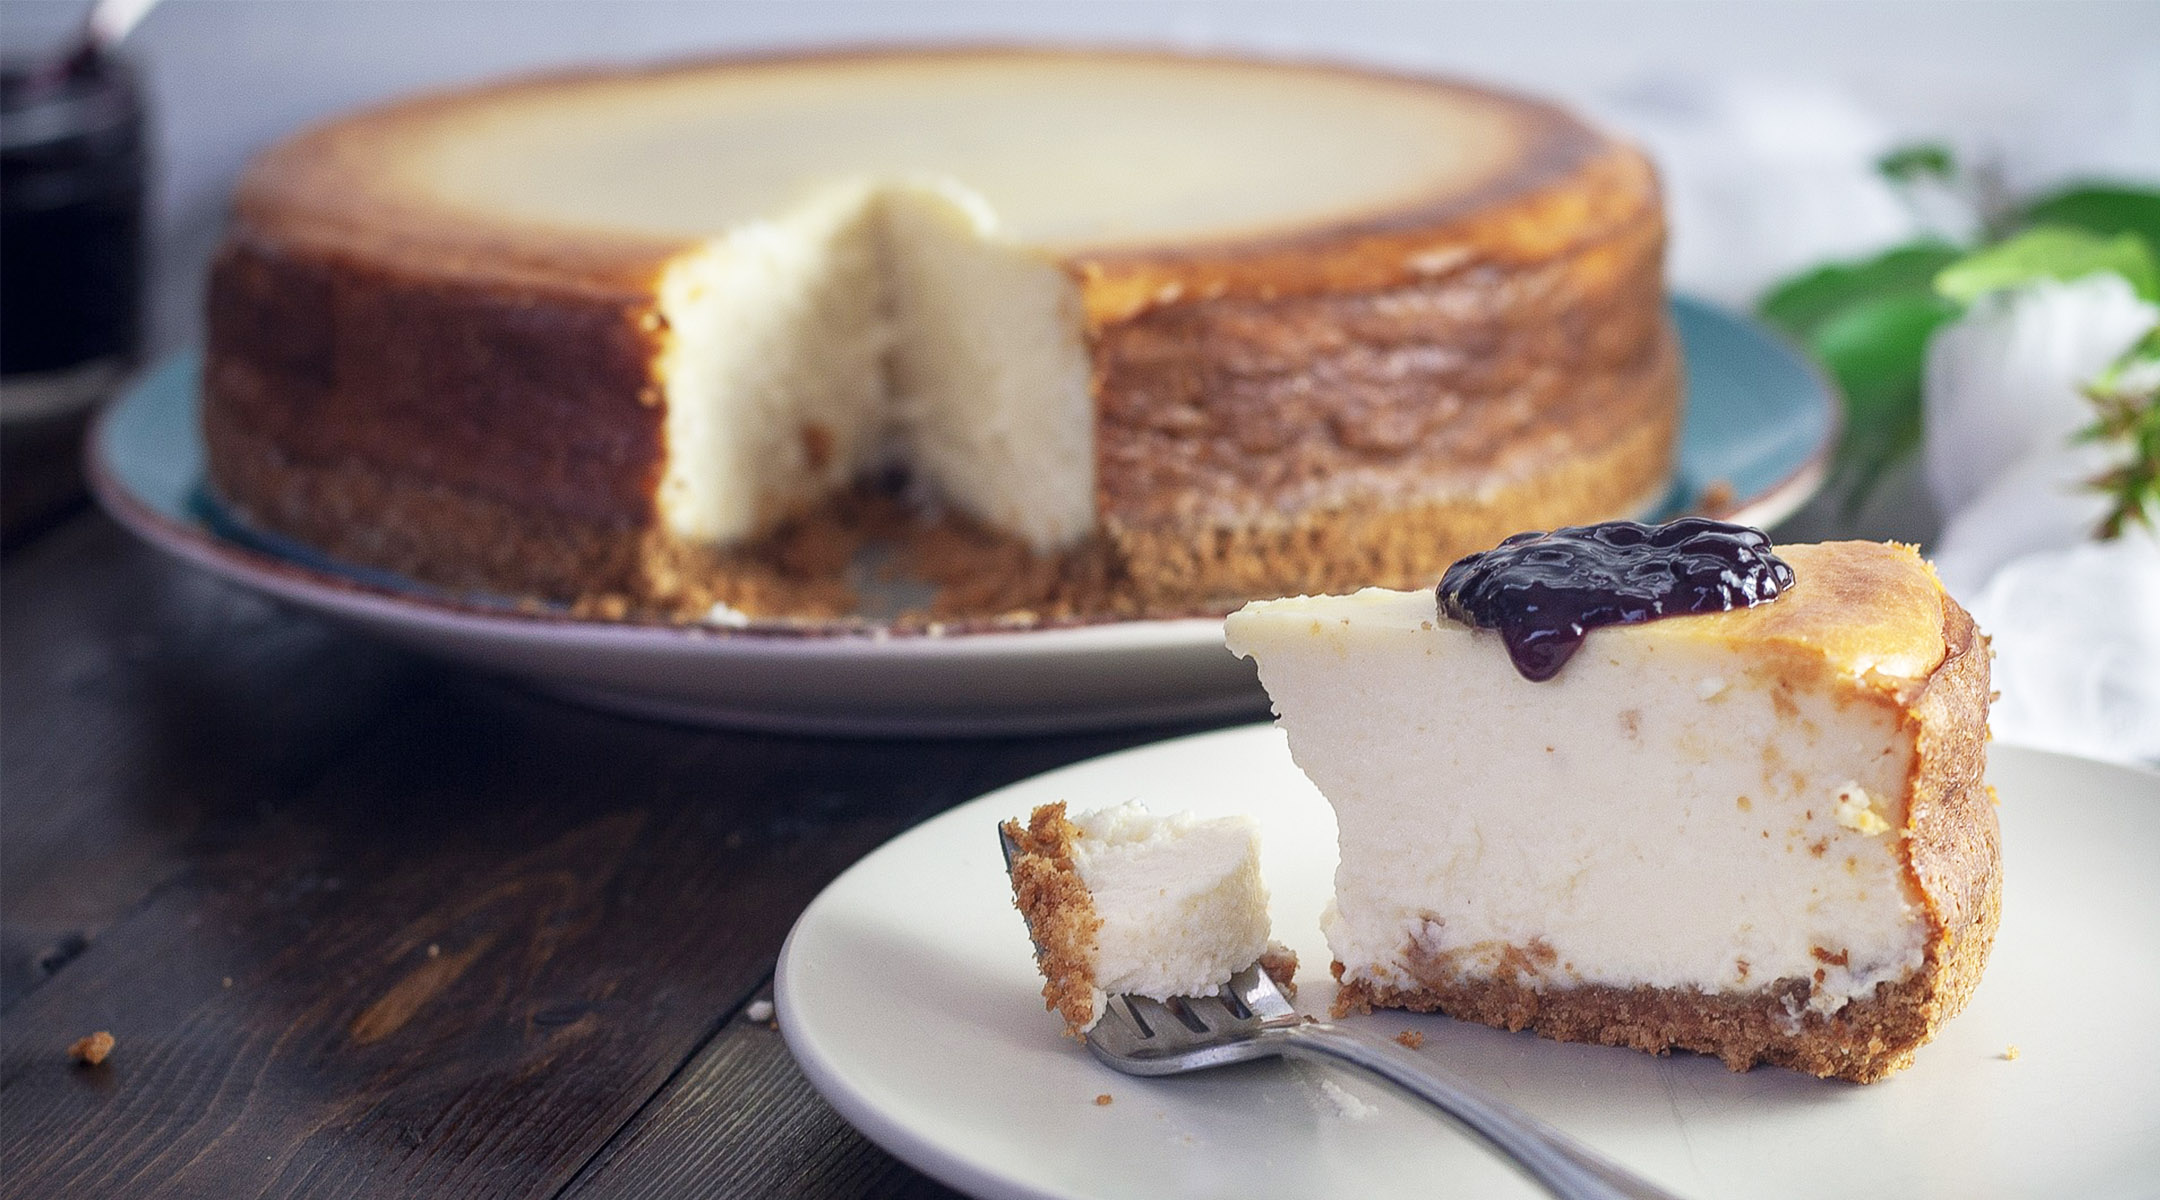 Many traditional Shavuot foods, like cheesecake, are hard for lactose-intolerant Jews to digest. (Pixabay)